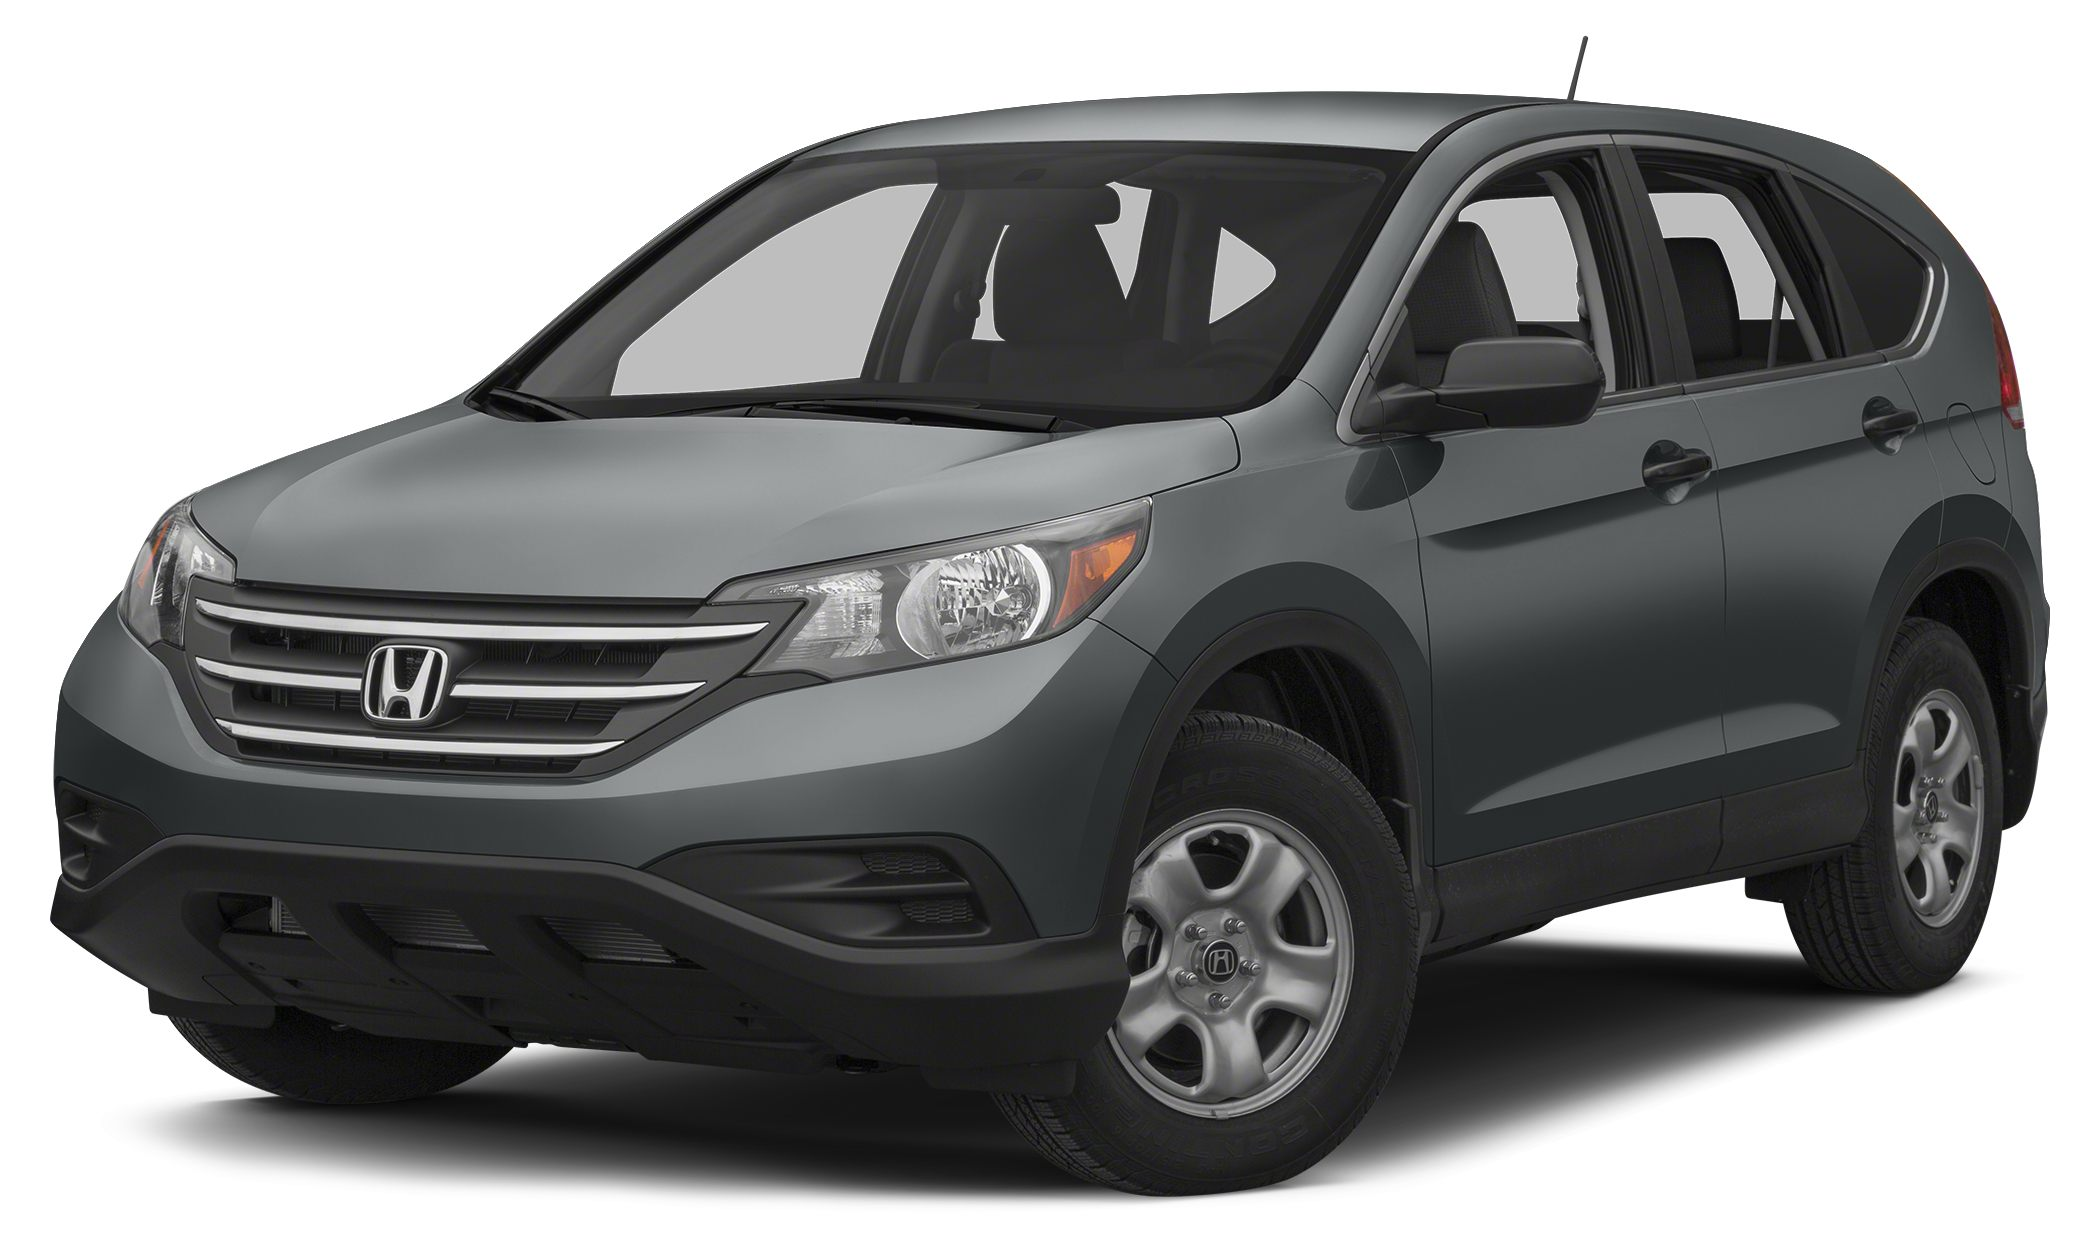 2014 Honda CR-V LX Honda Certified Certified Control layout is ergonomic This vehicle has accumu